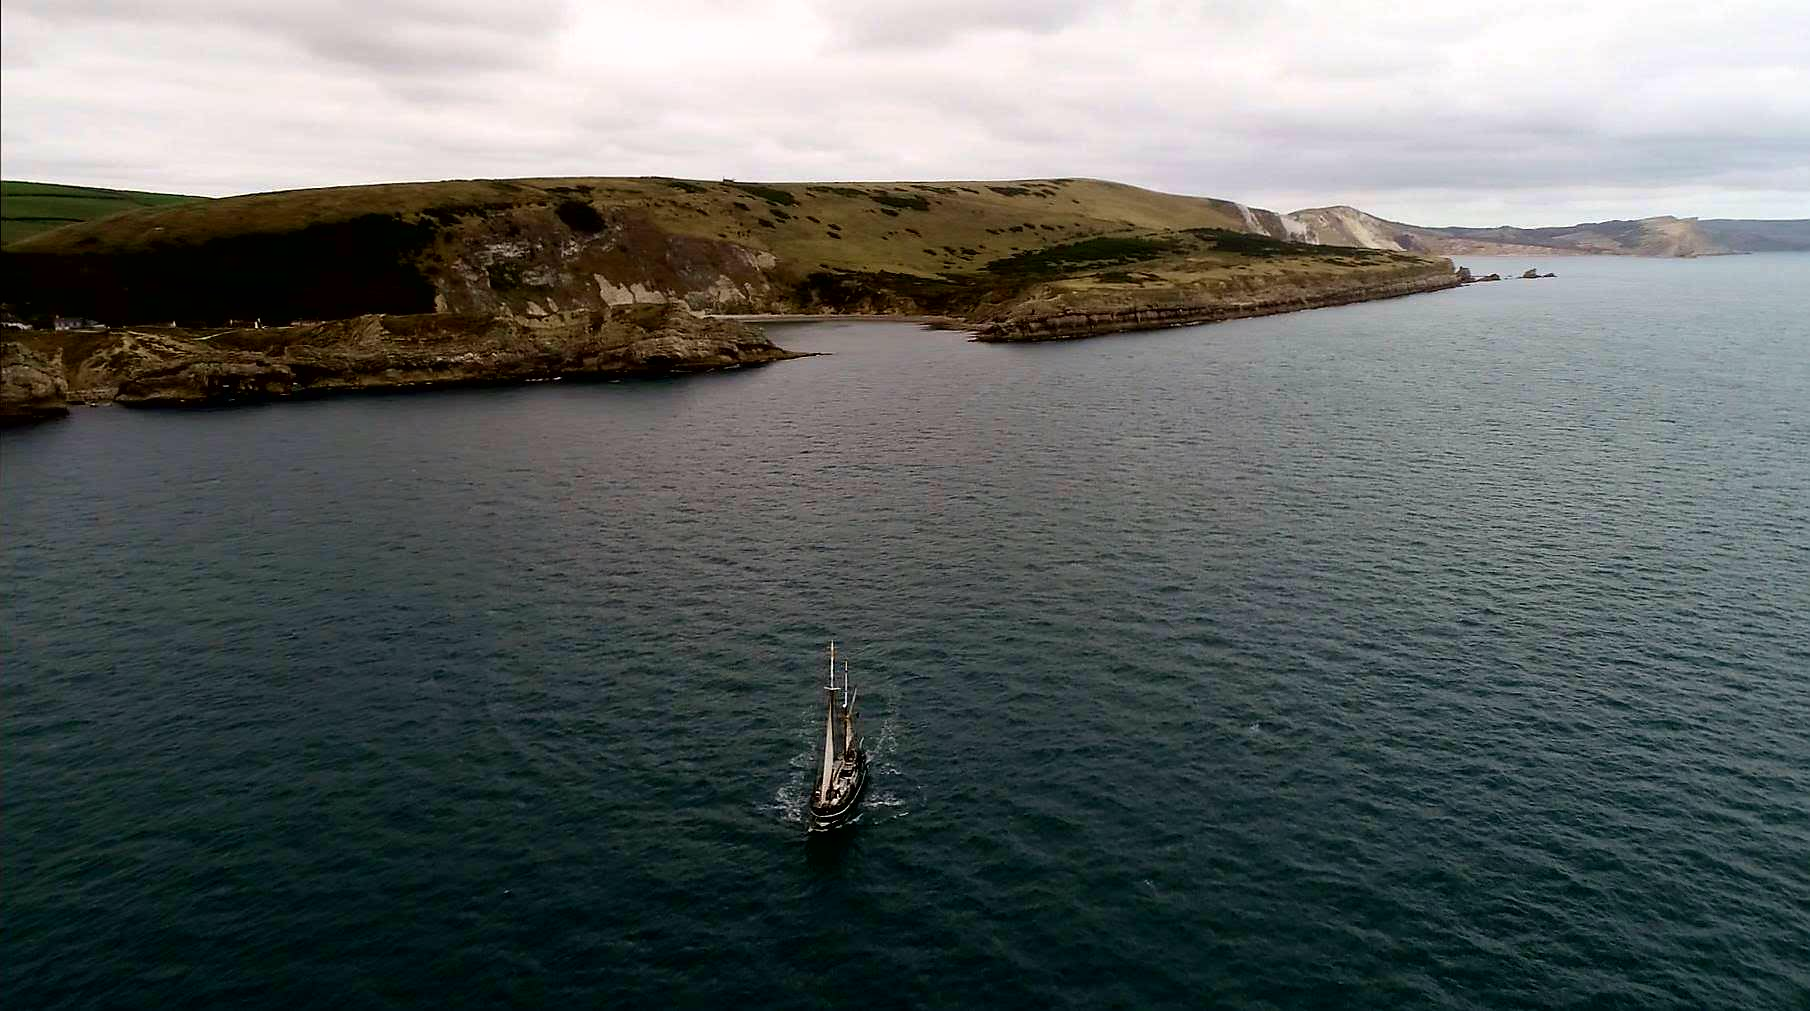 Moonfleet Sailing at Lulworth Cove taken